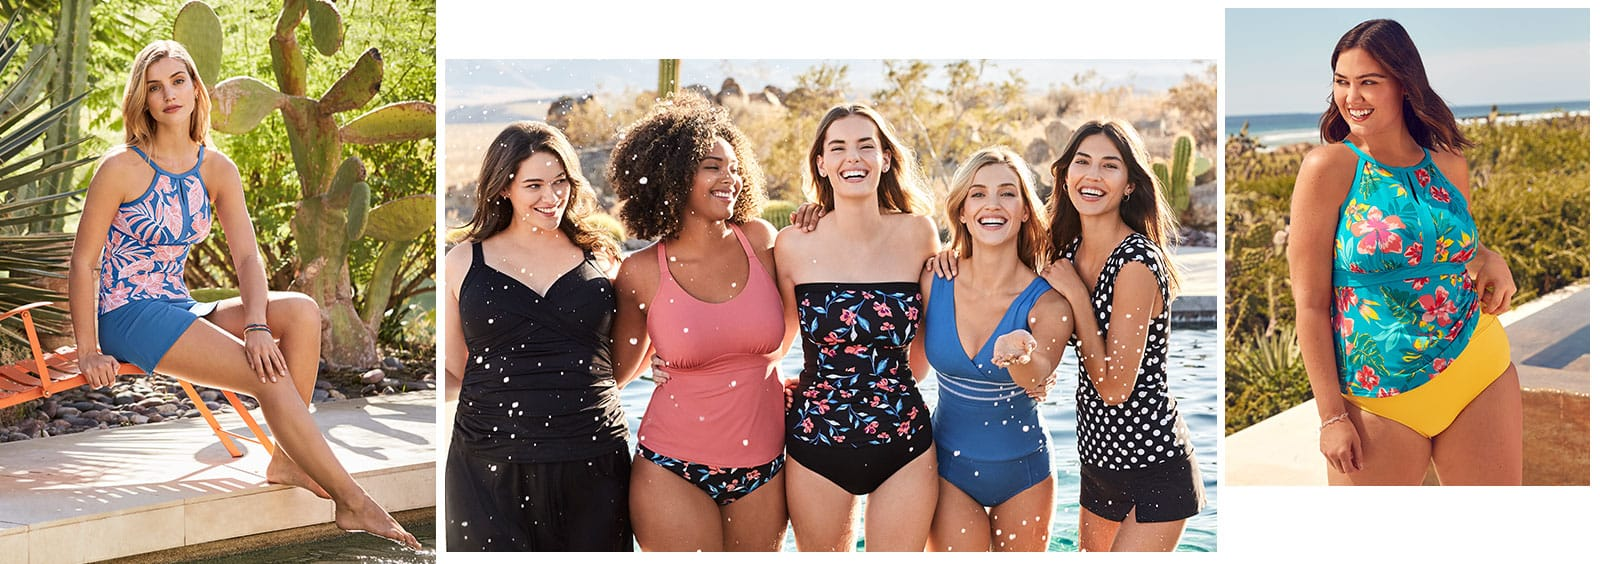 Top 4 Swimsuits Every Big-Busted Woman Needs